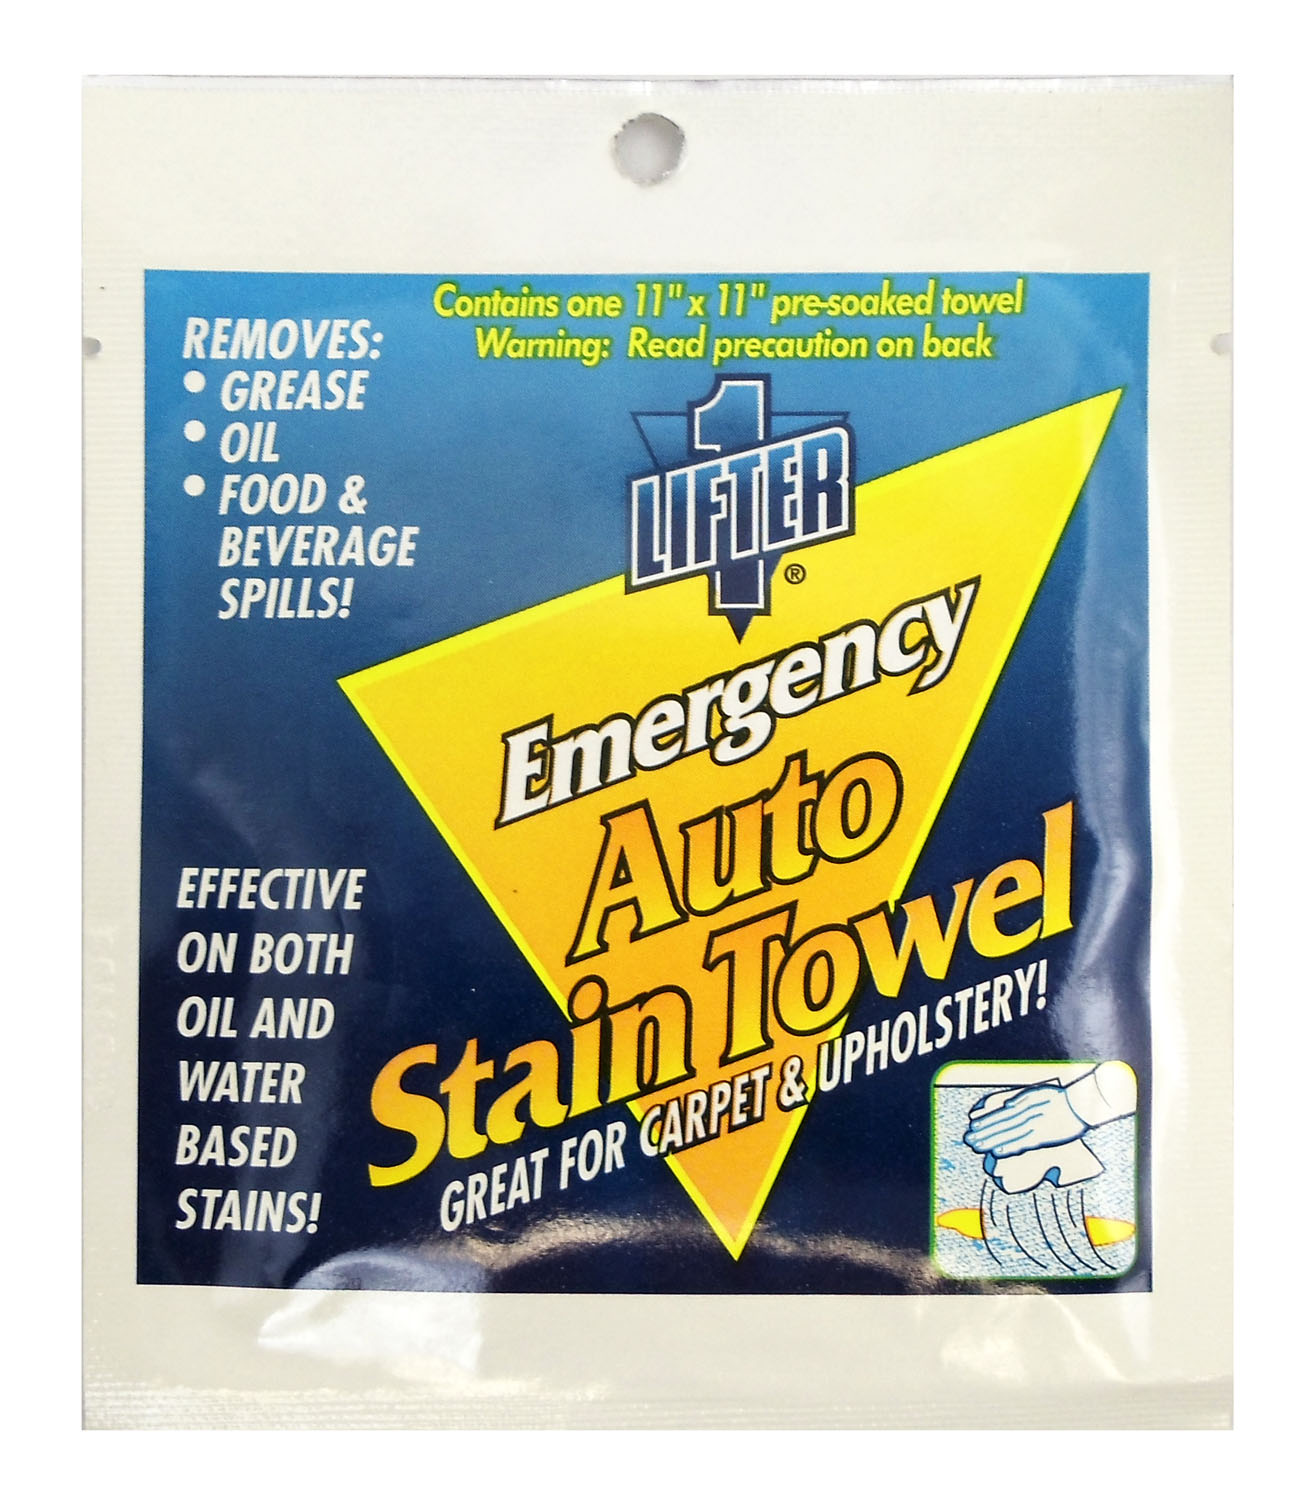 "LIFTER 1 - 11"" X 11"" EMERGENCY AUTO STAIN LIFTER TOWELETTE FOR GREASE, OIL, FOOD & BEVERAGE SPILLS ON CARPET & UPHOLSTERY"